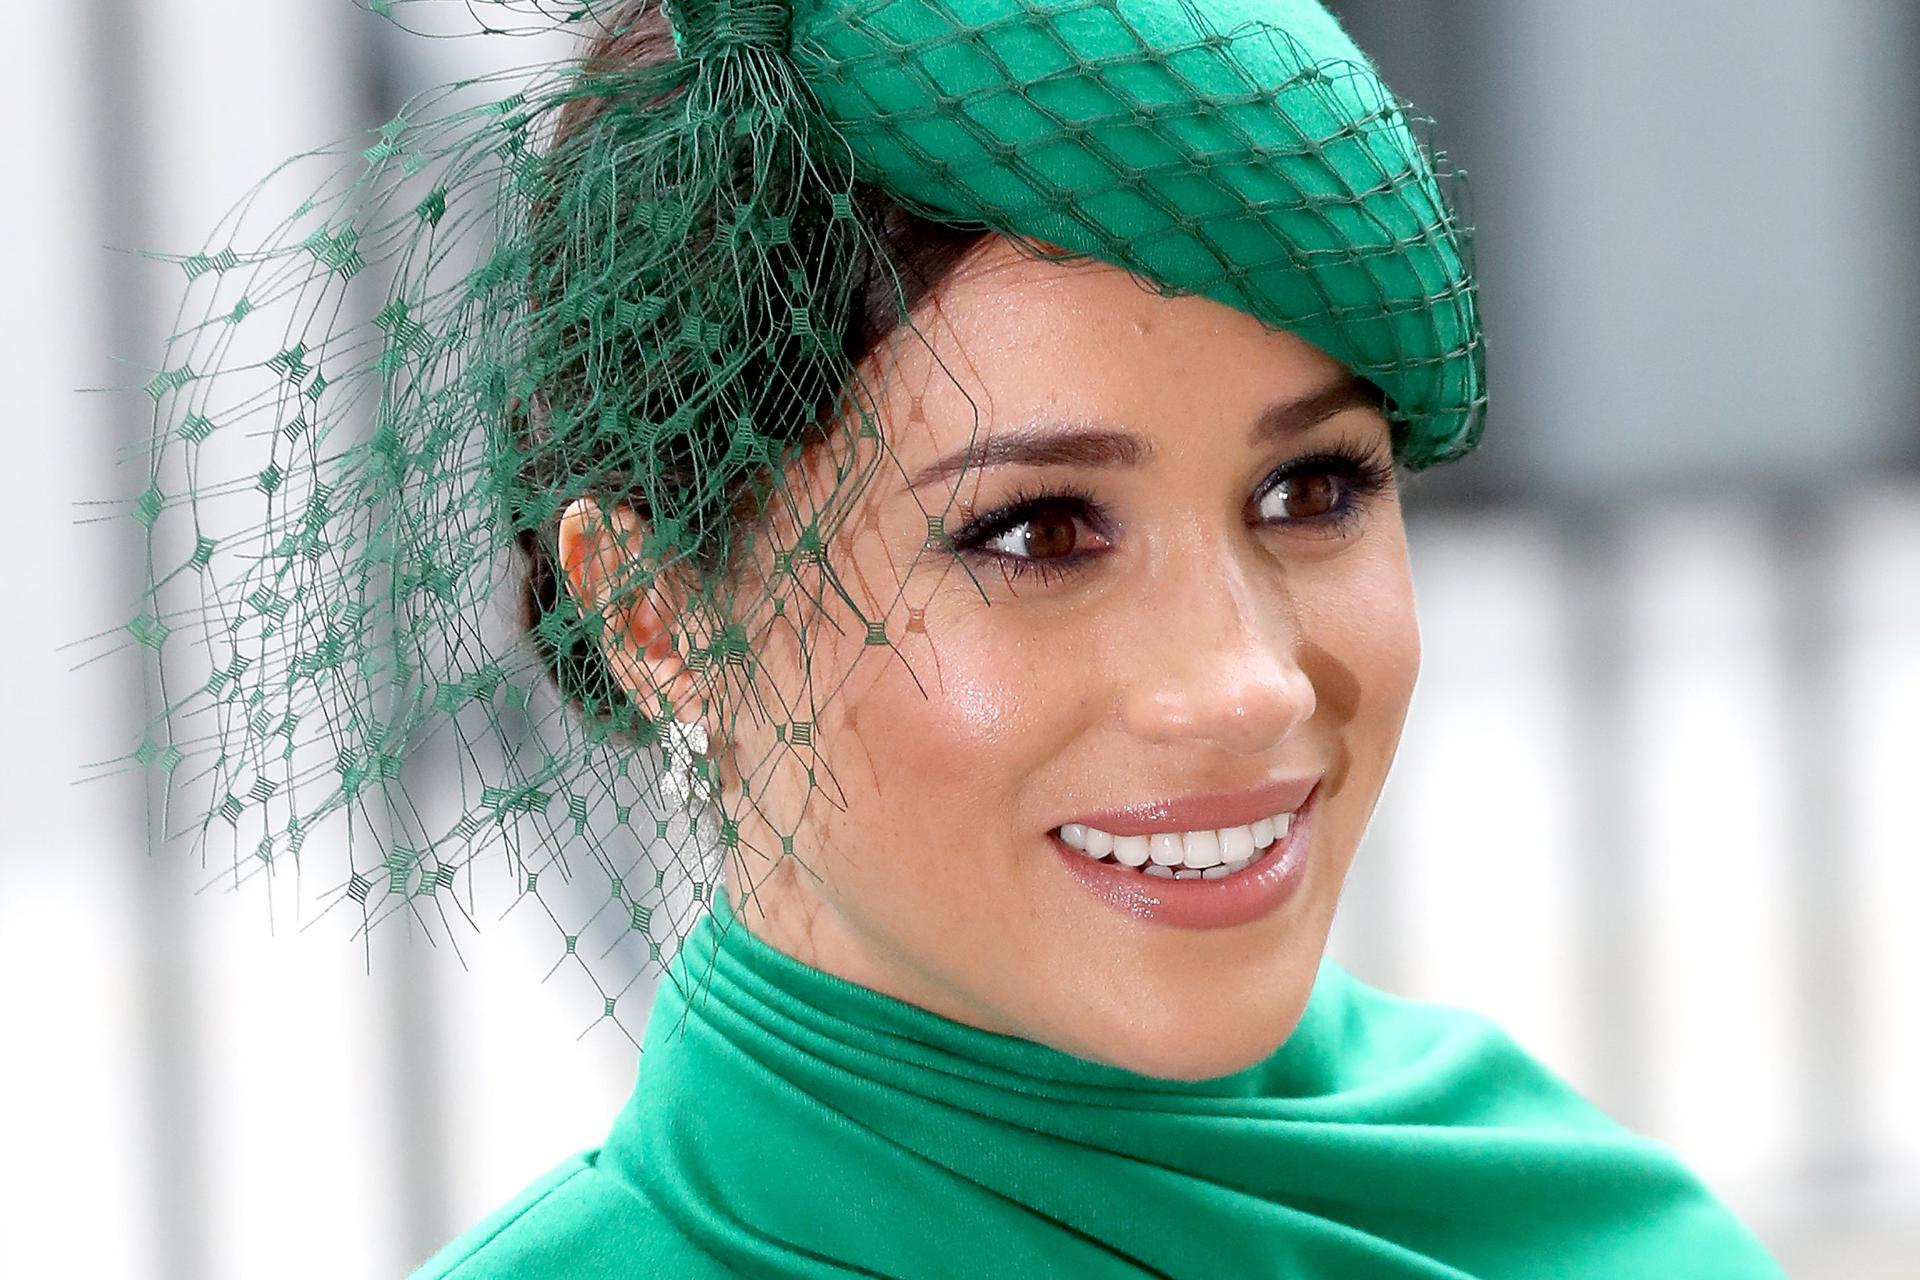 Meghan Markle smiles in an elaborate netted hat